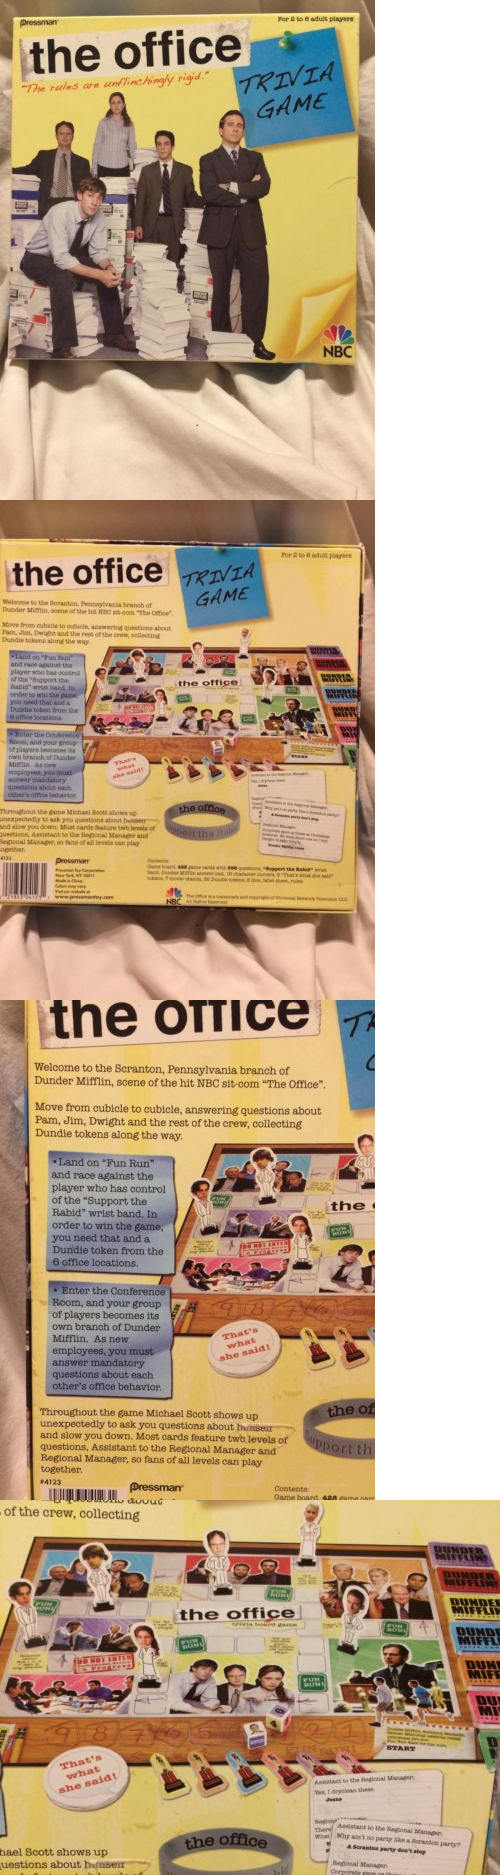 contemporary manufacture 180349 the office trivia board game by pressman nbc 2 to 6 players